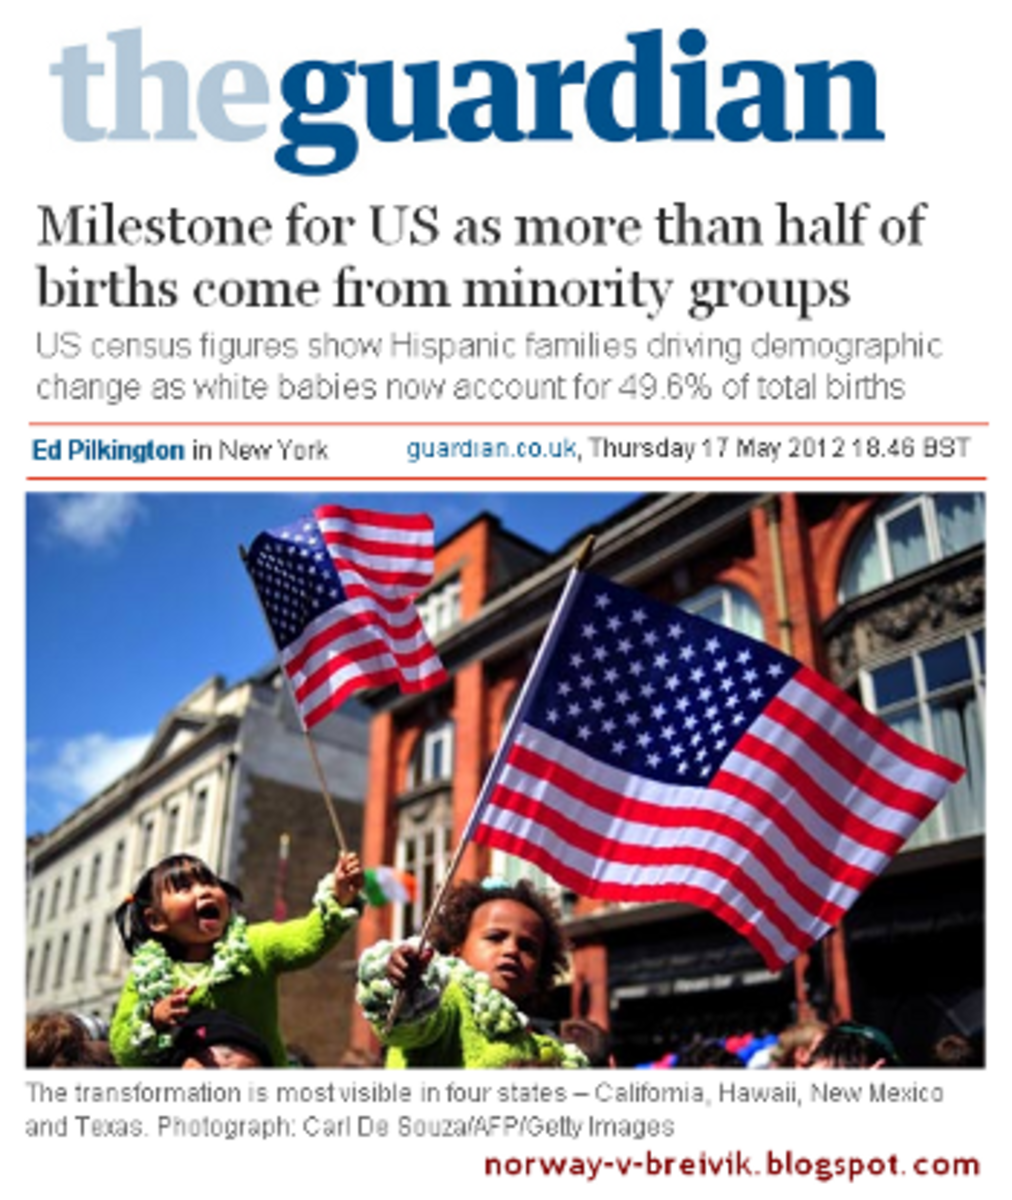 OK, SO WHITES ARE GOING TO BE THE MINORITY IN THE FUTURE OF AMERICA. I READ RECENTLY THAT TO BE AGAINST THIS DEVELOPMENT IS RACIST BUT TO APPLAUD IT IS NOT.  NOW LET ME THINK . . .